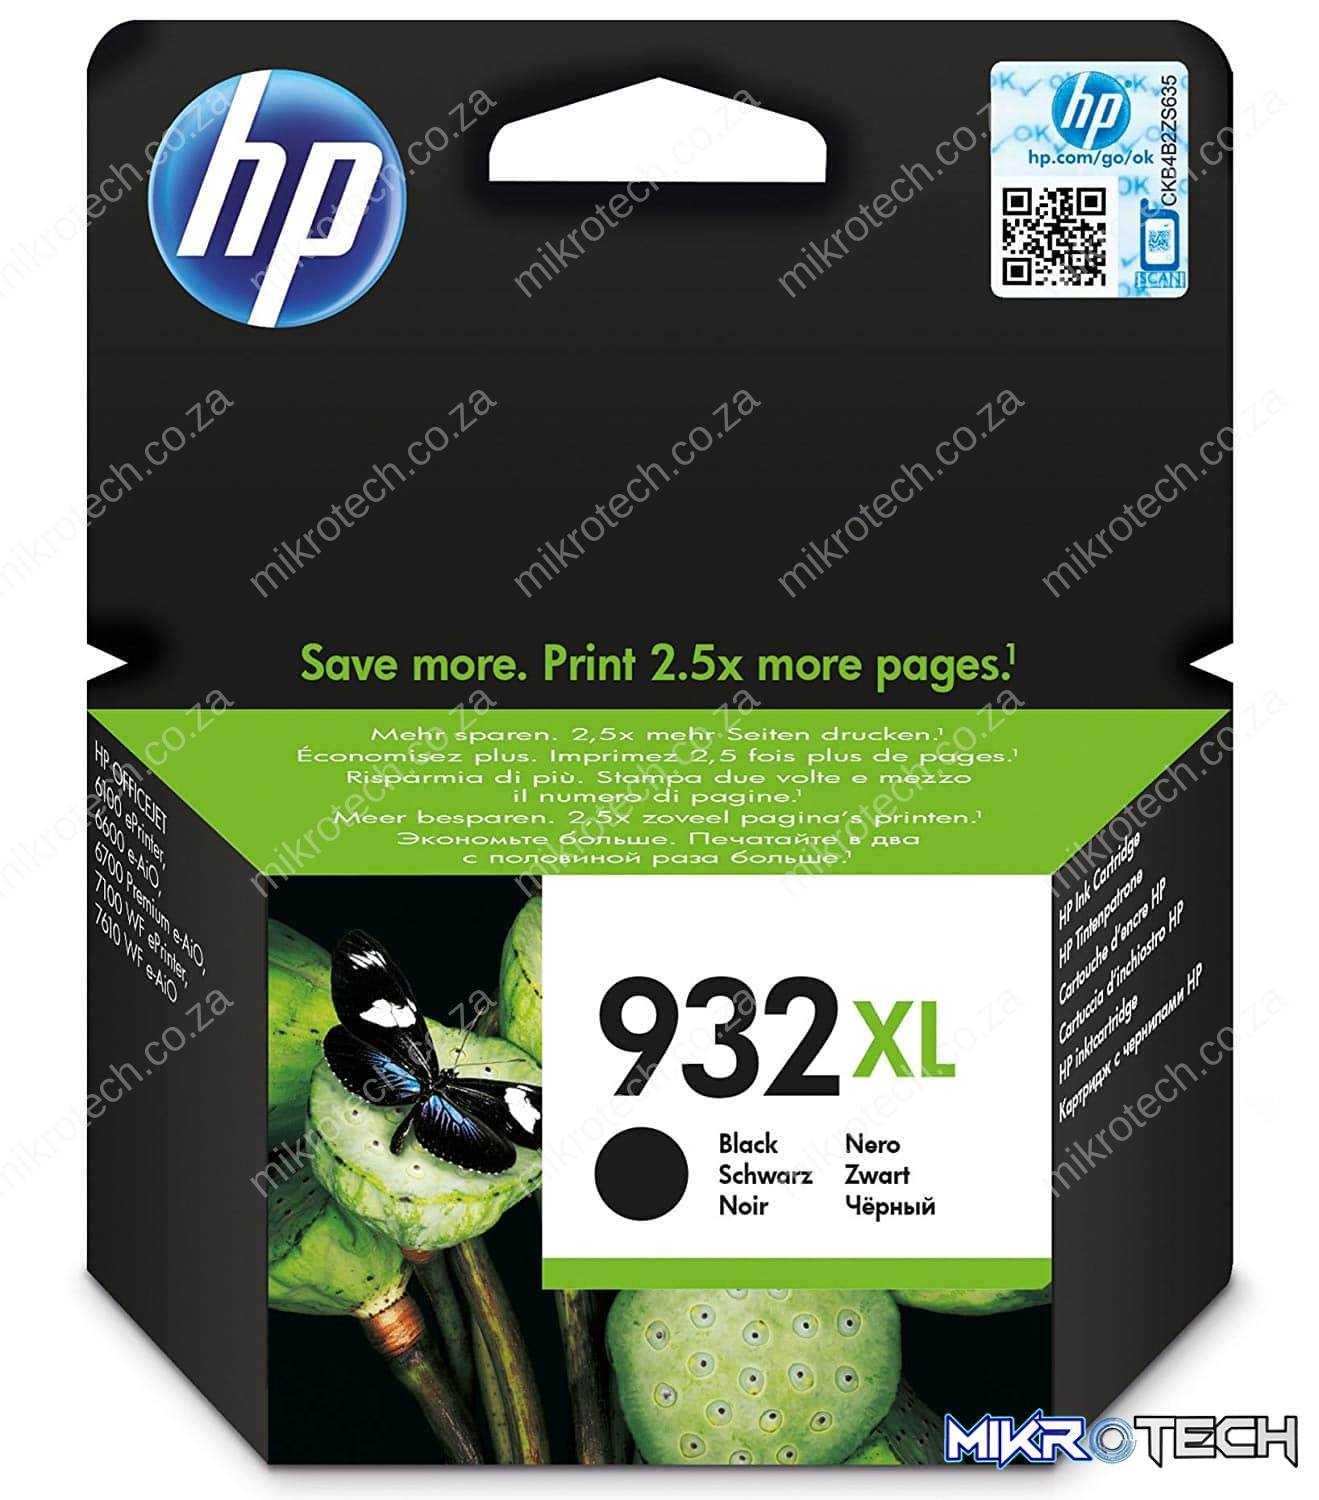 HP CN053AE no.932XL Black ink , 1000 pages - for HP Officejet 6700 series